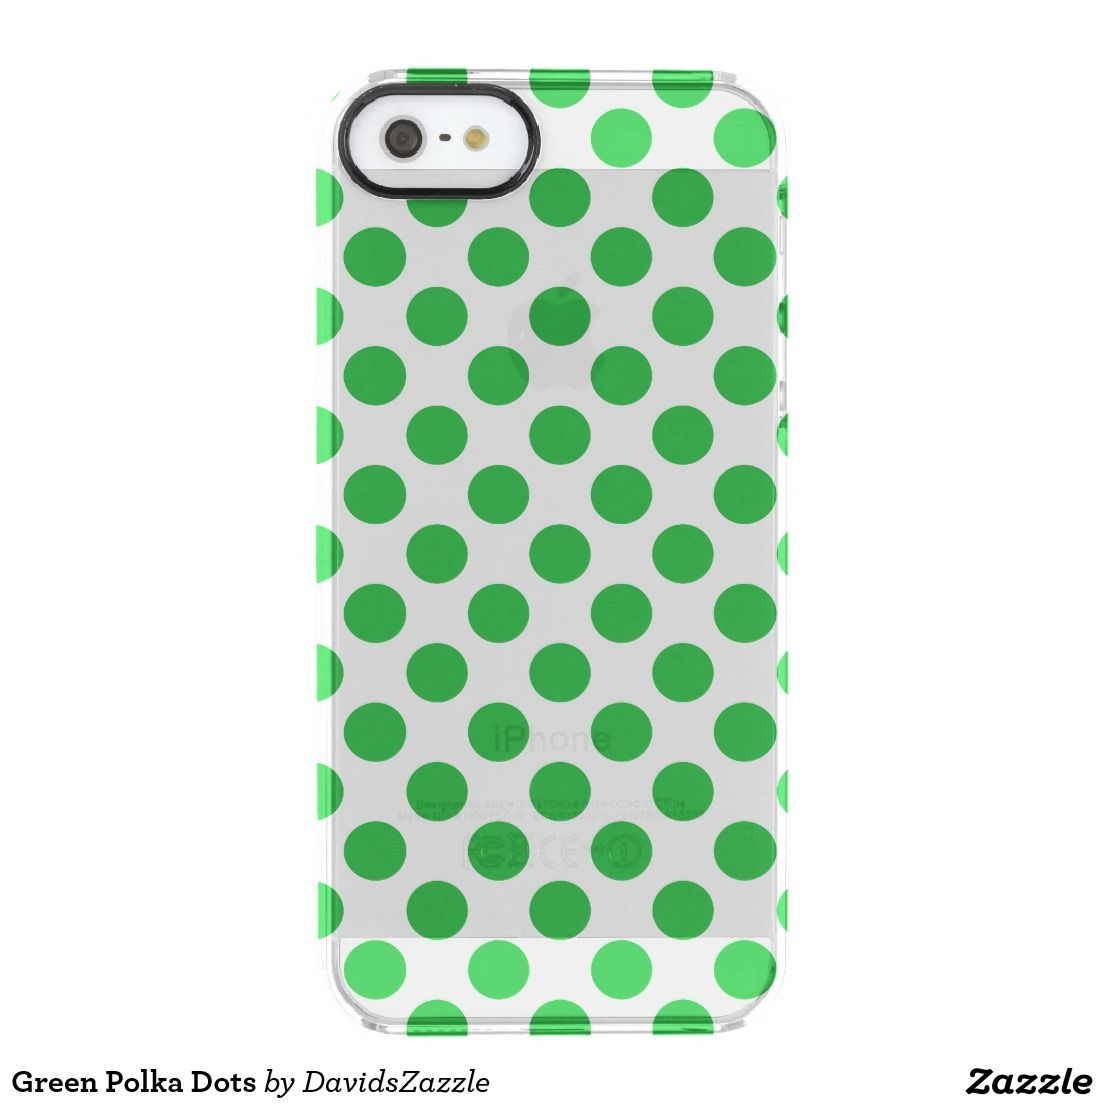 Green polka dots phone case available on many products